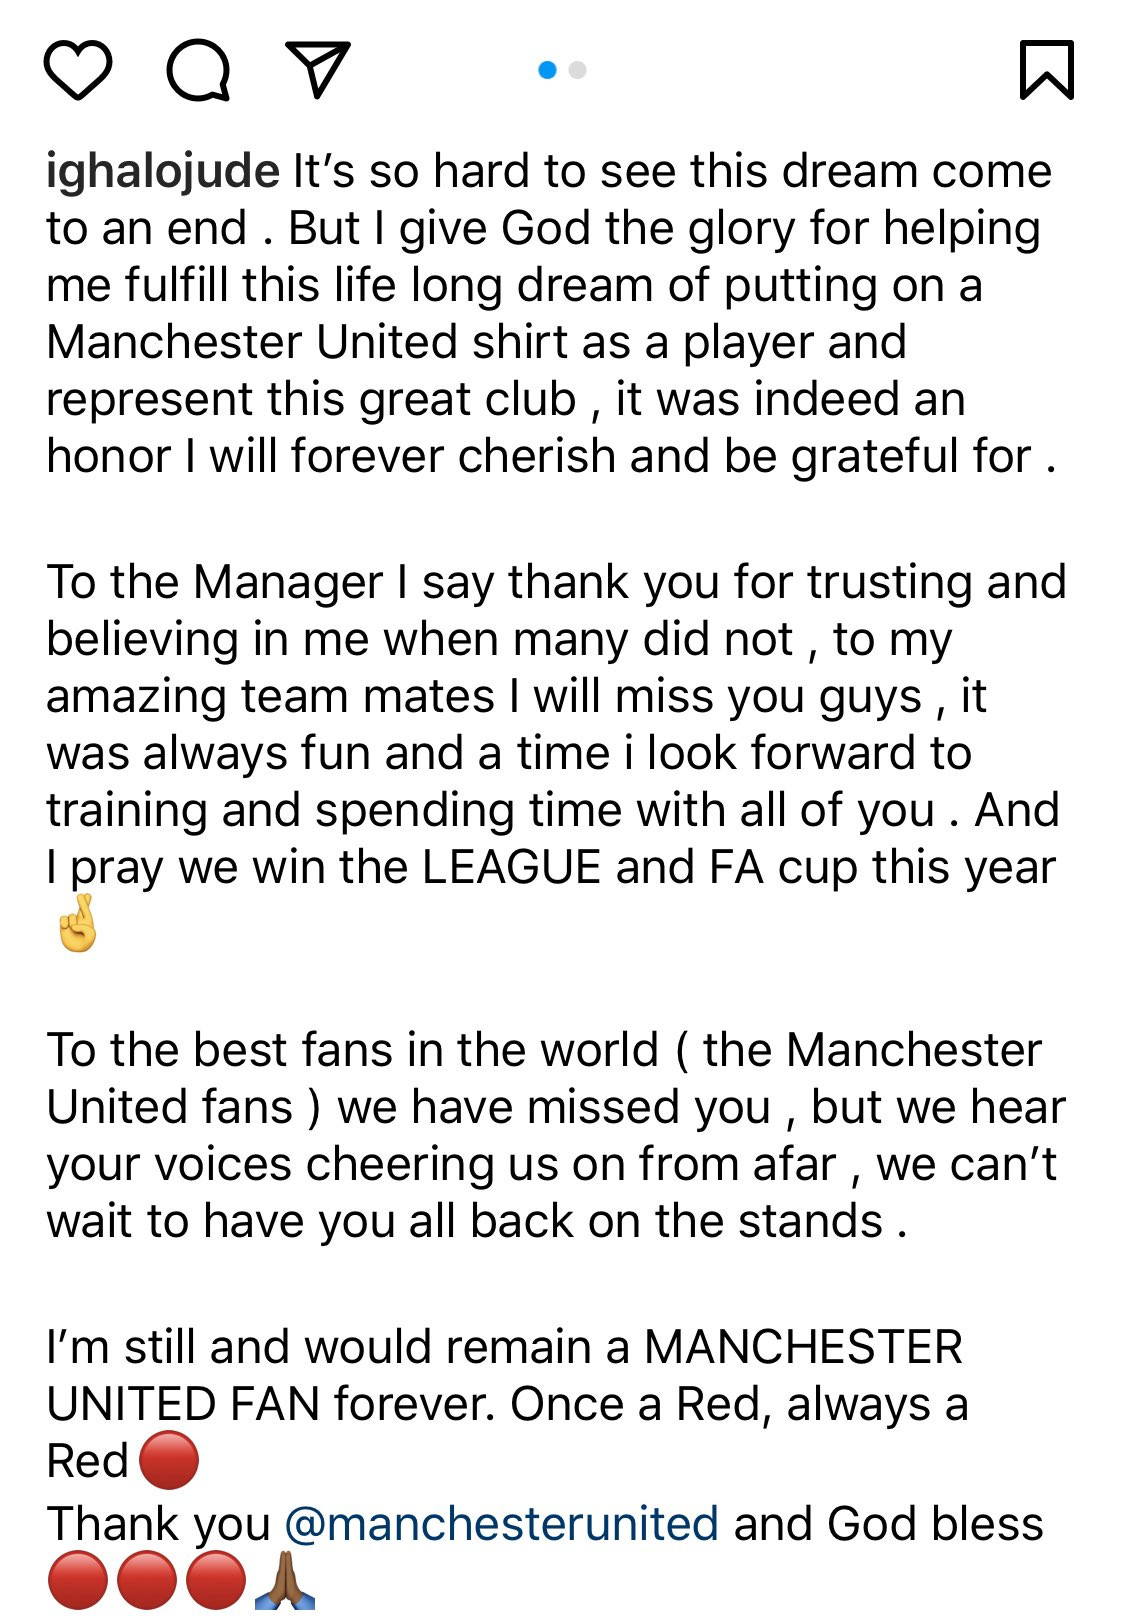 'It's so hard to see this dream come to an end' - Odion Ighalo says emotional farewell to Manchester United 1